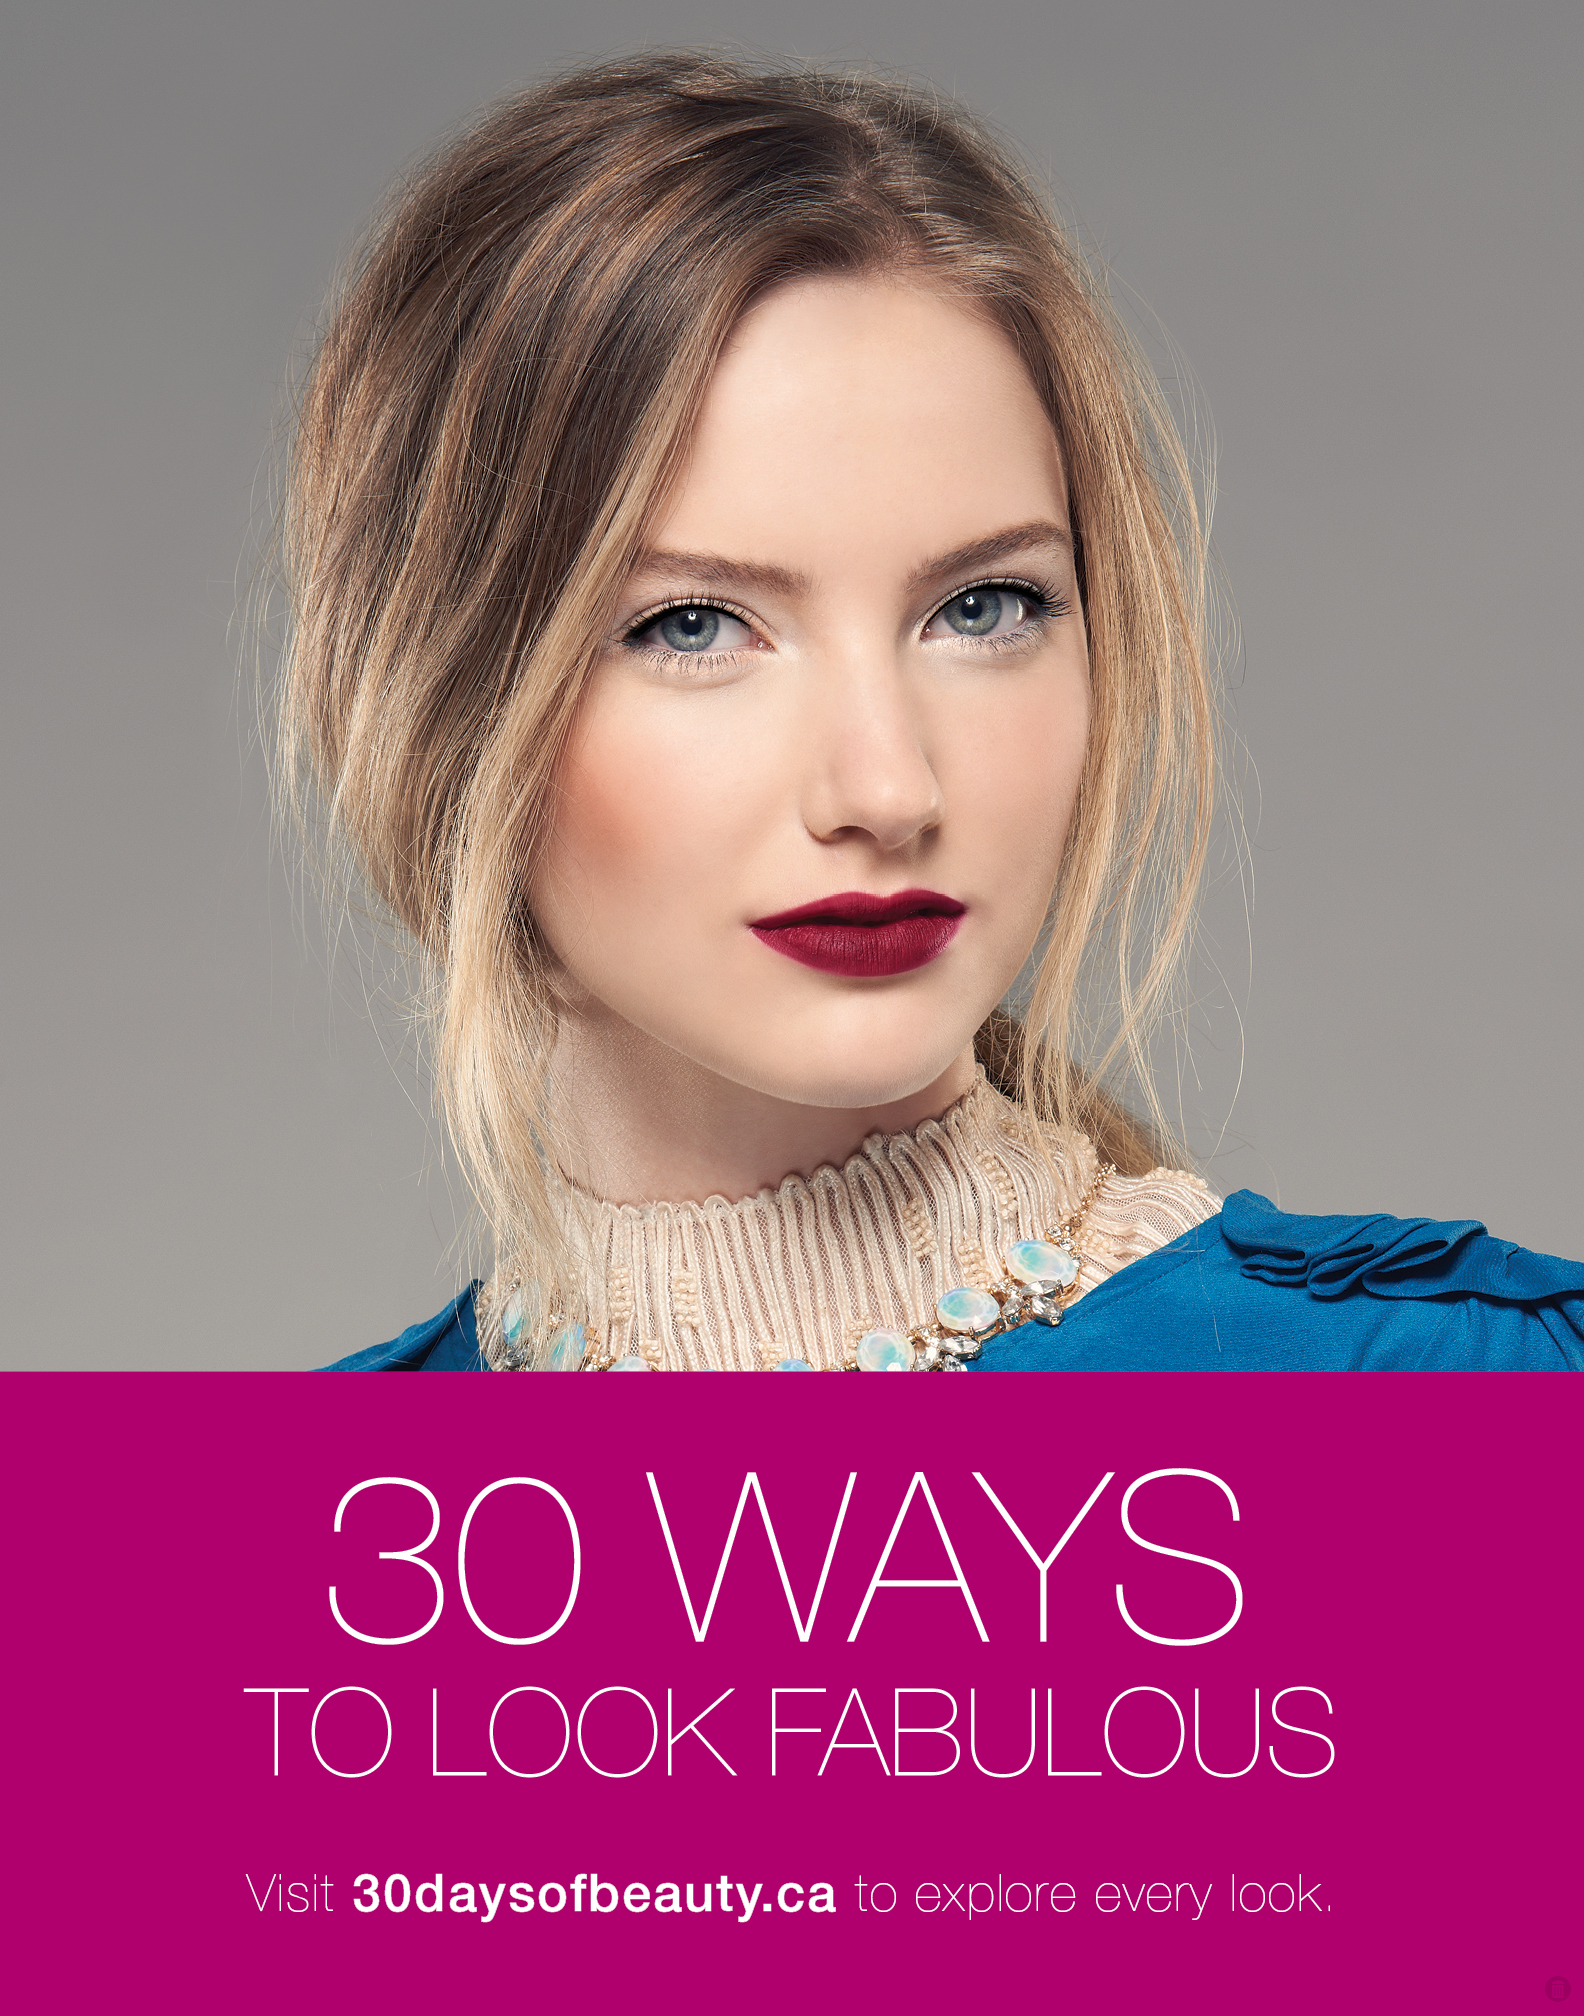 30 Days of Beauty at Shoppers Drug Mart #30DaysofBeauty